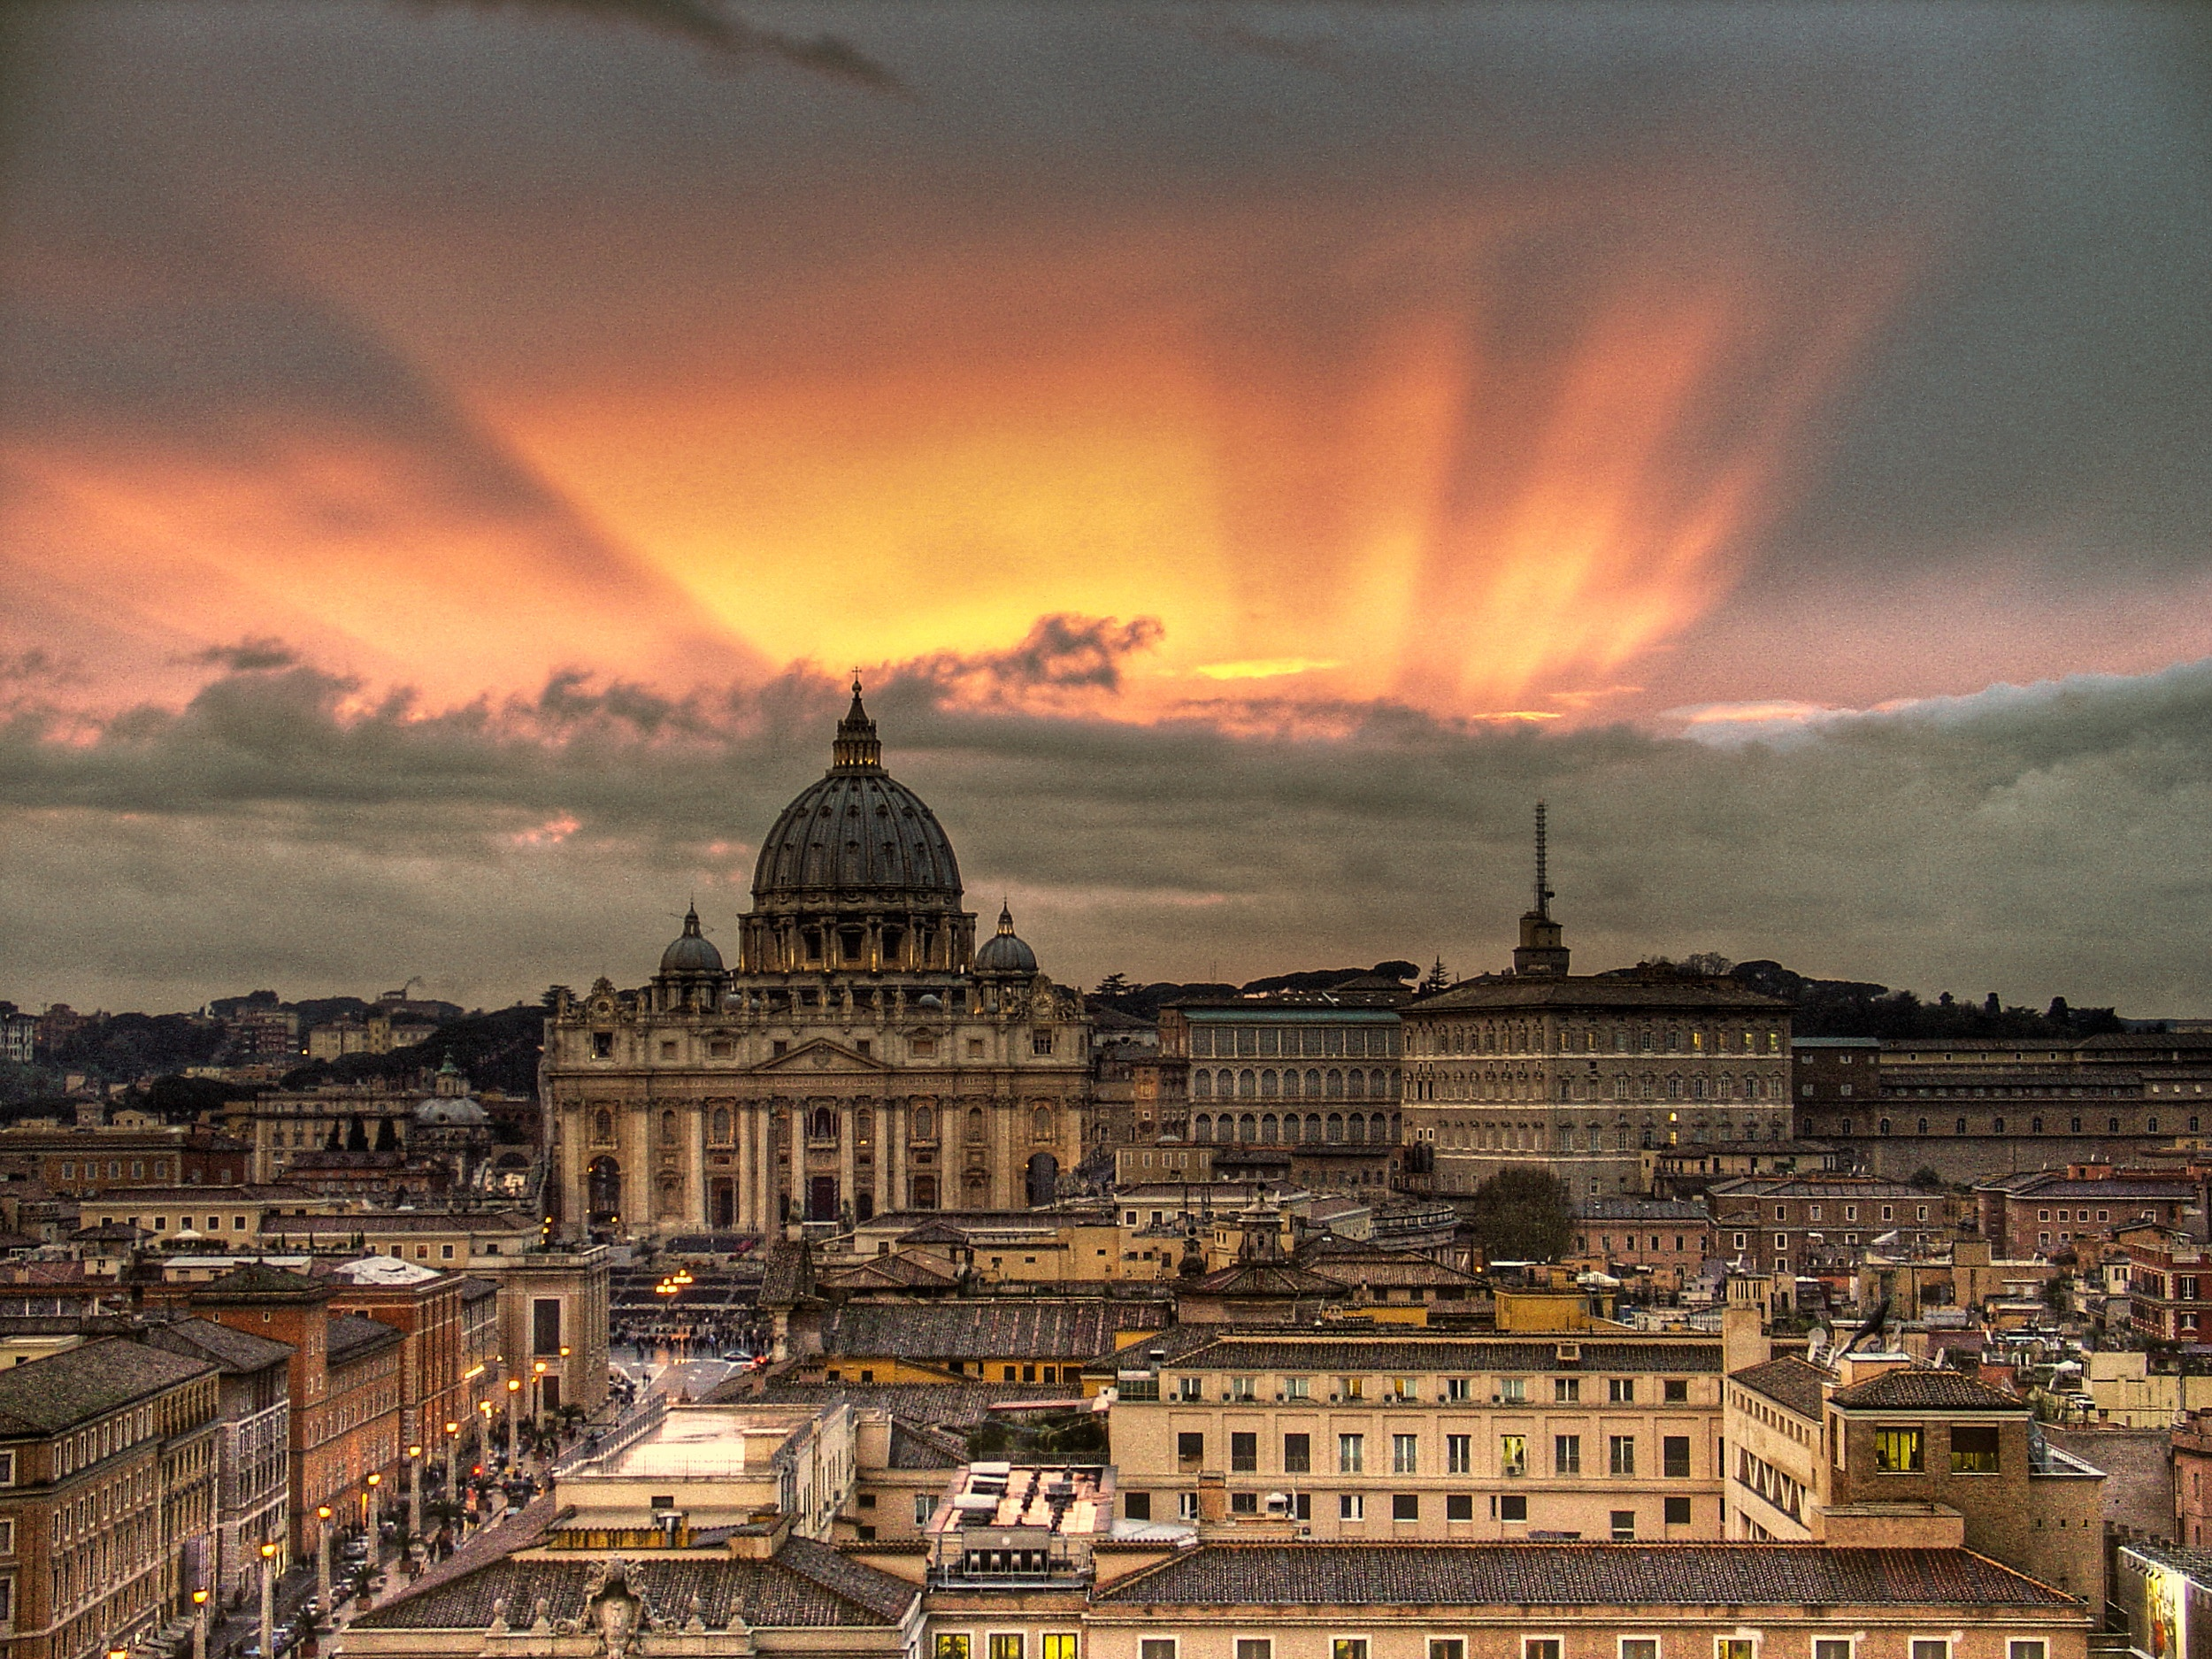 Vatican_Sunset_-_Rome,_Italy_-_Easter_2008